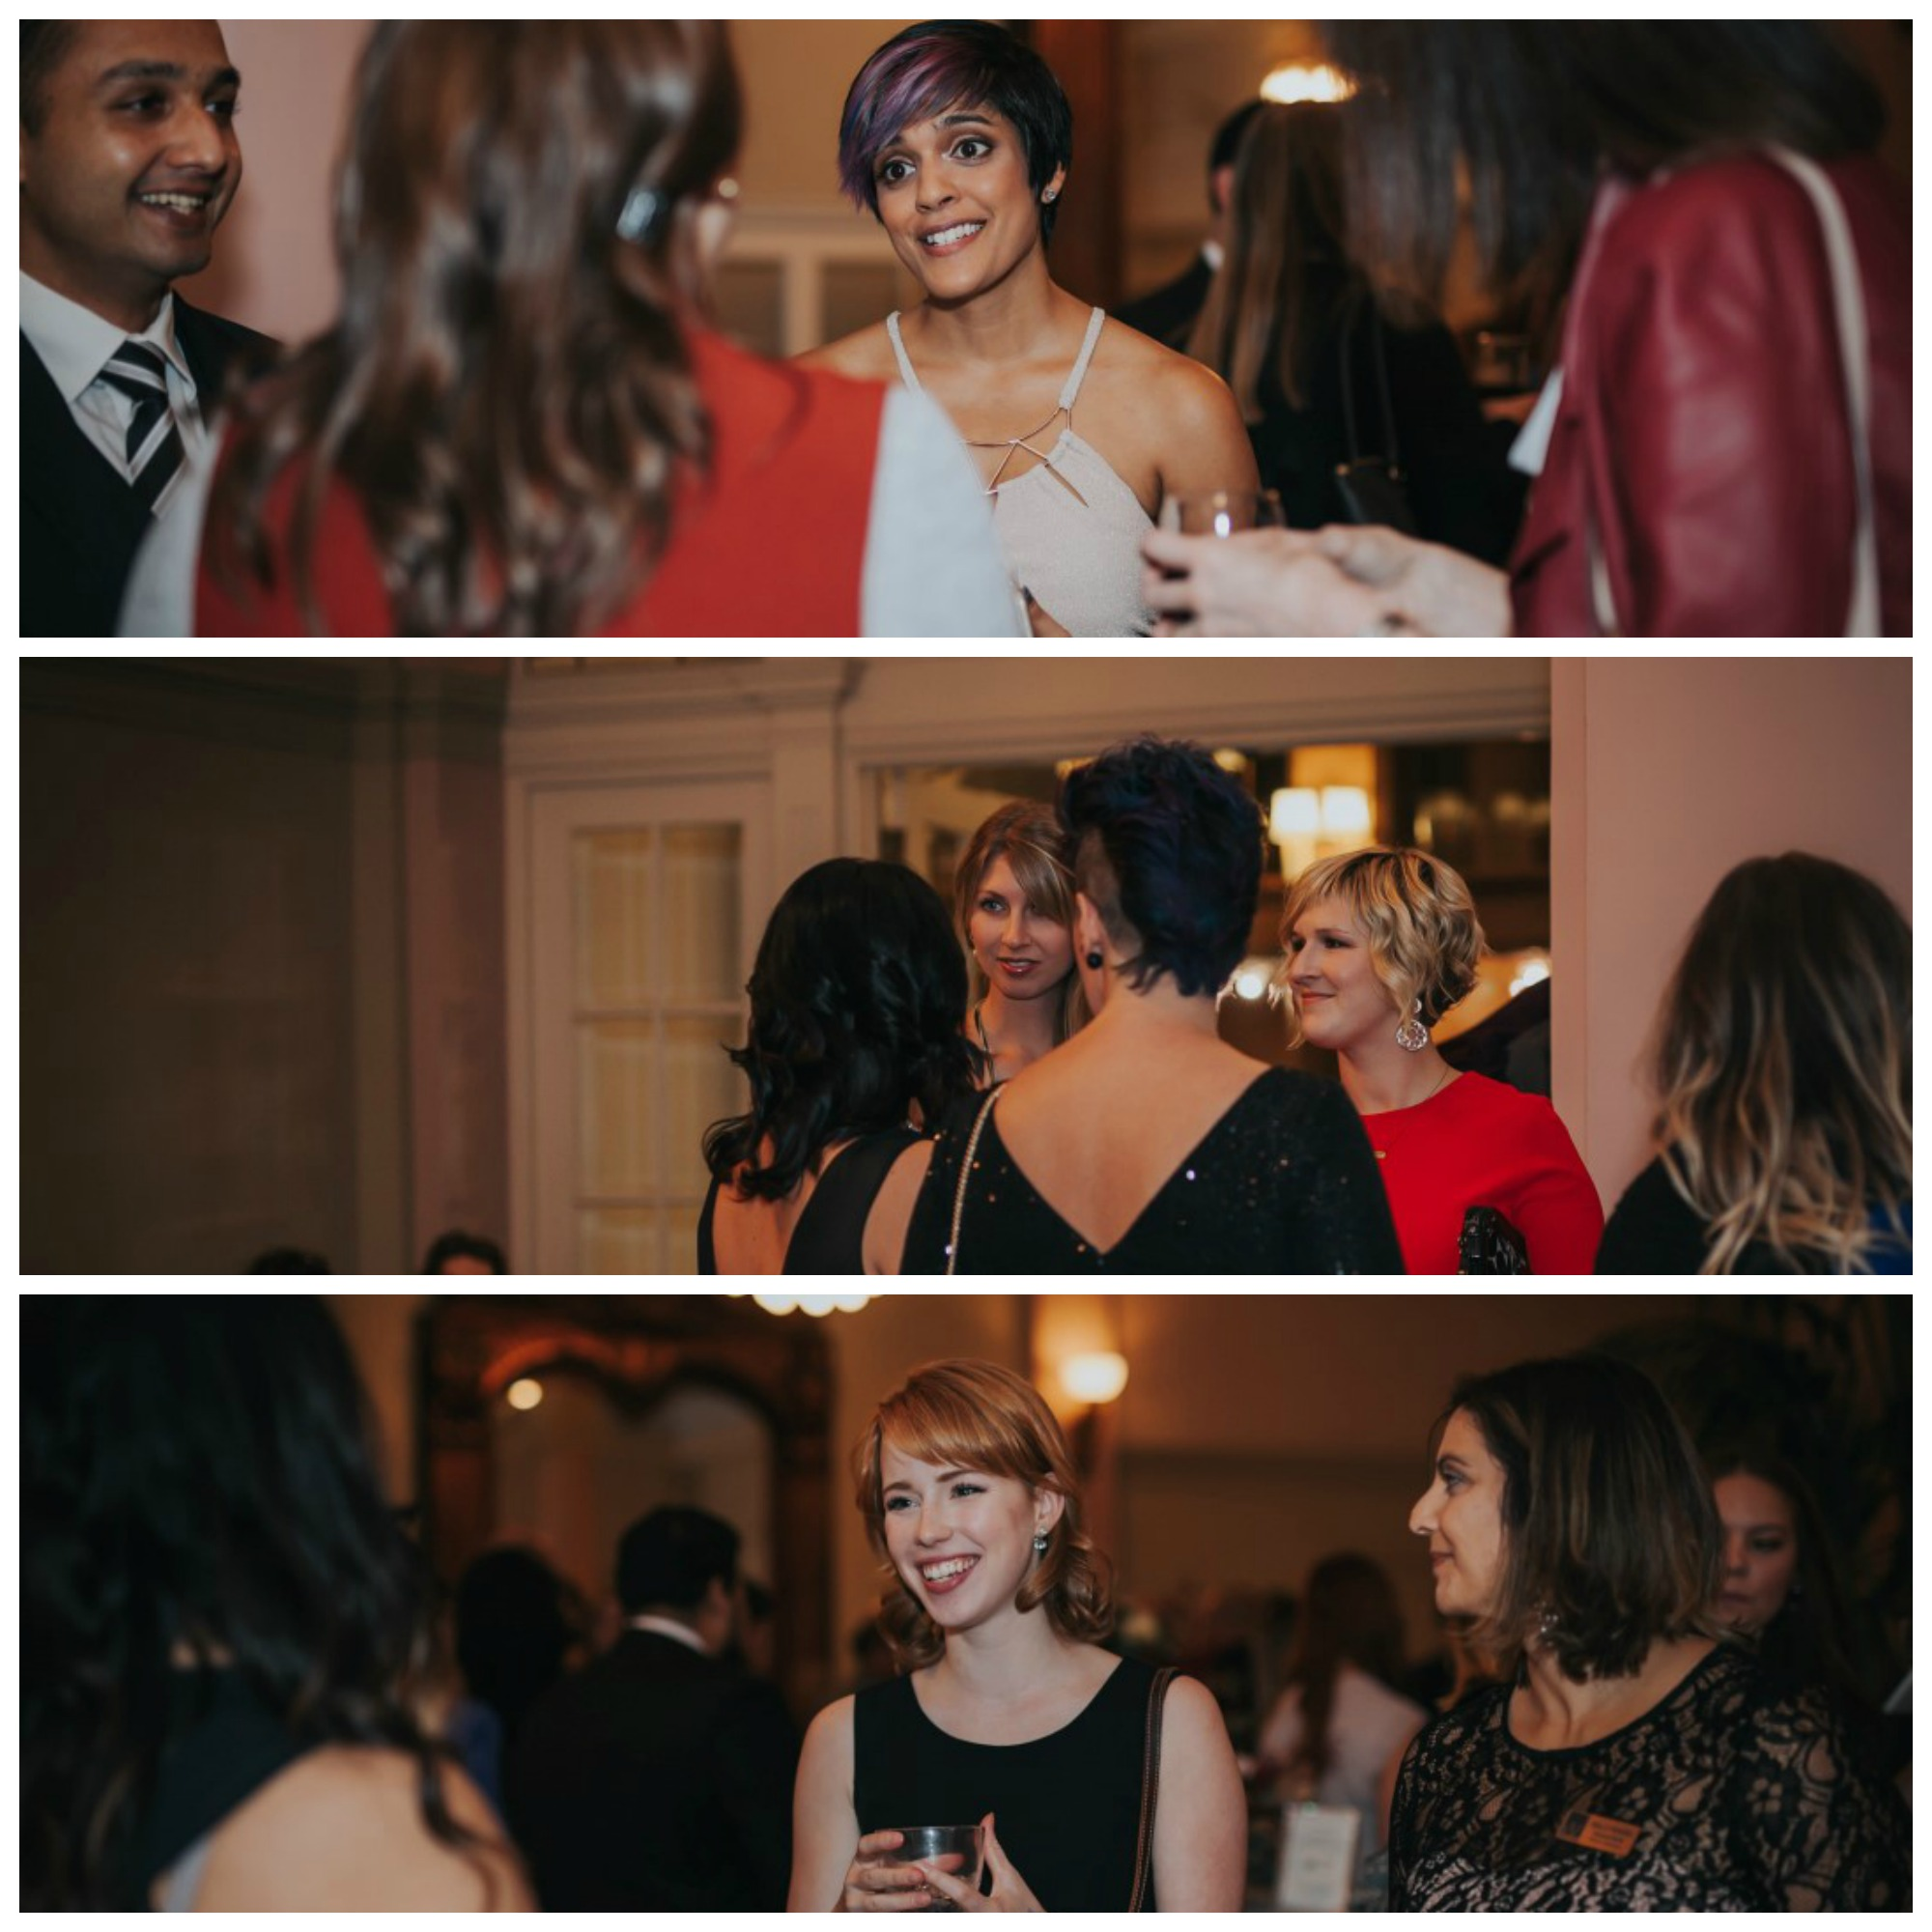 Vancouver Island Wedding Awards guests mingling at the Fairmont Empress